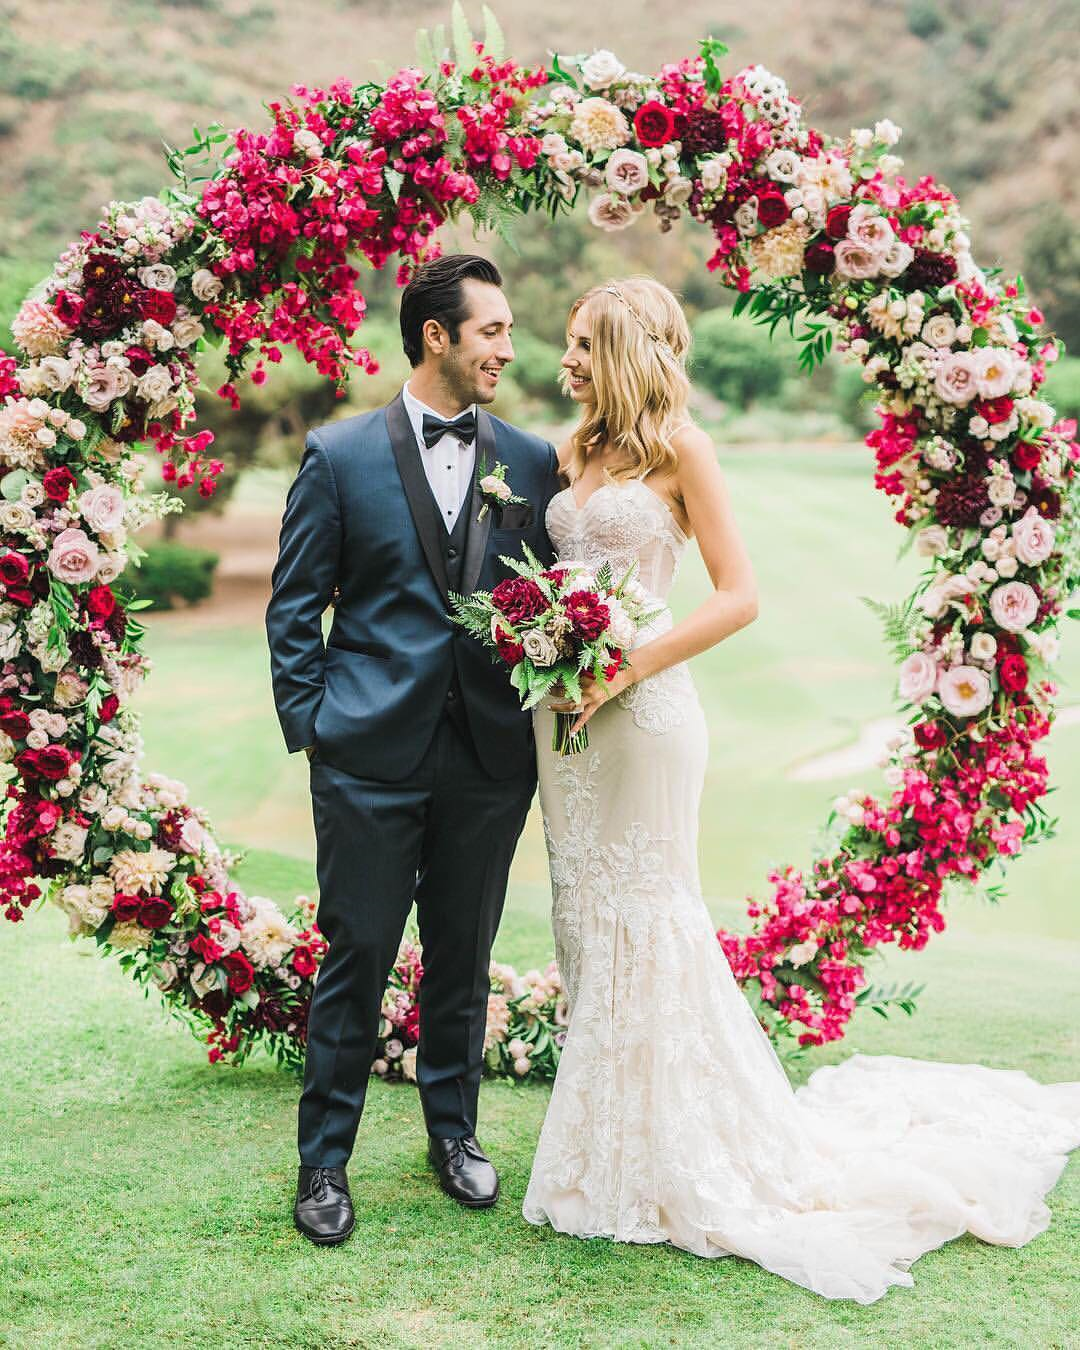 Flower Arch For Wedding: 5 Unique And Personalized Wedding Arch Ideas